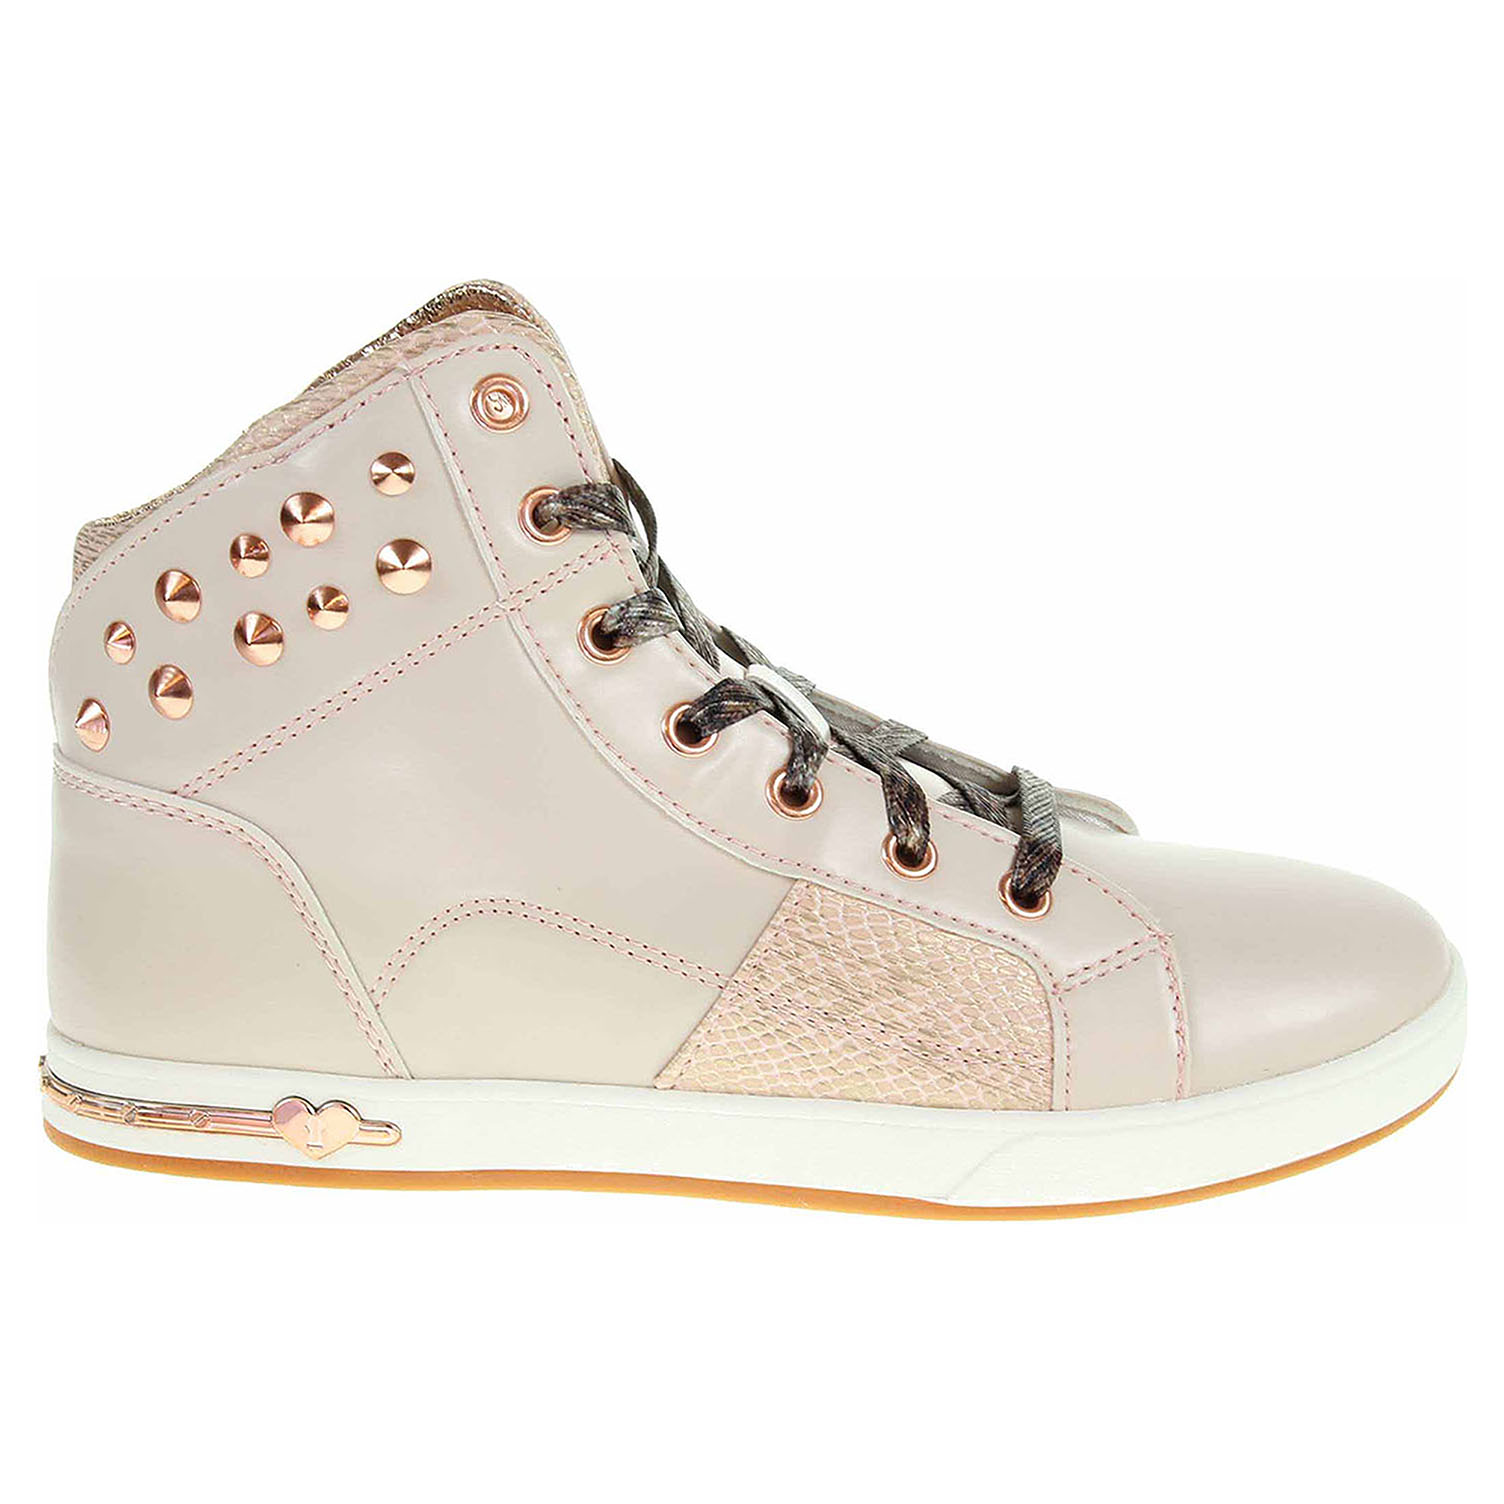 detail Skechers Shoutouts-Stud Chic pink